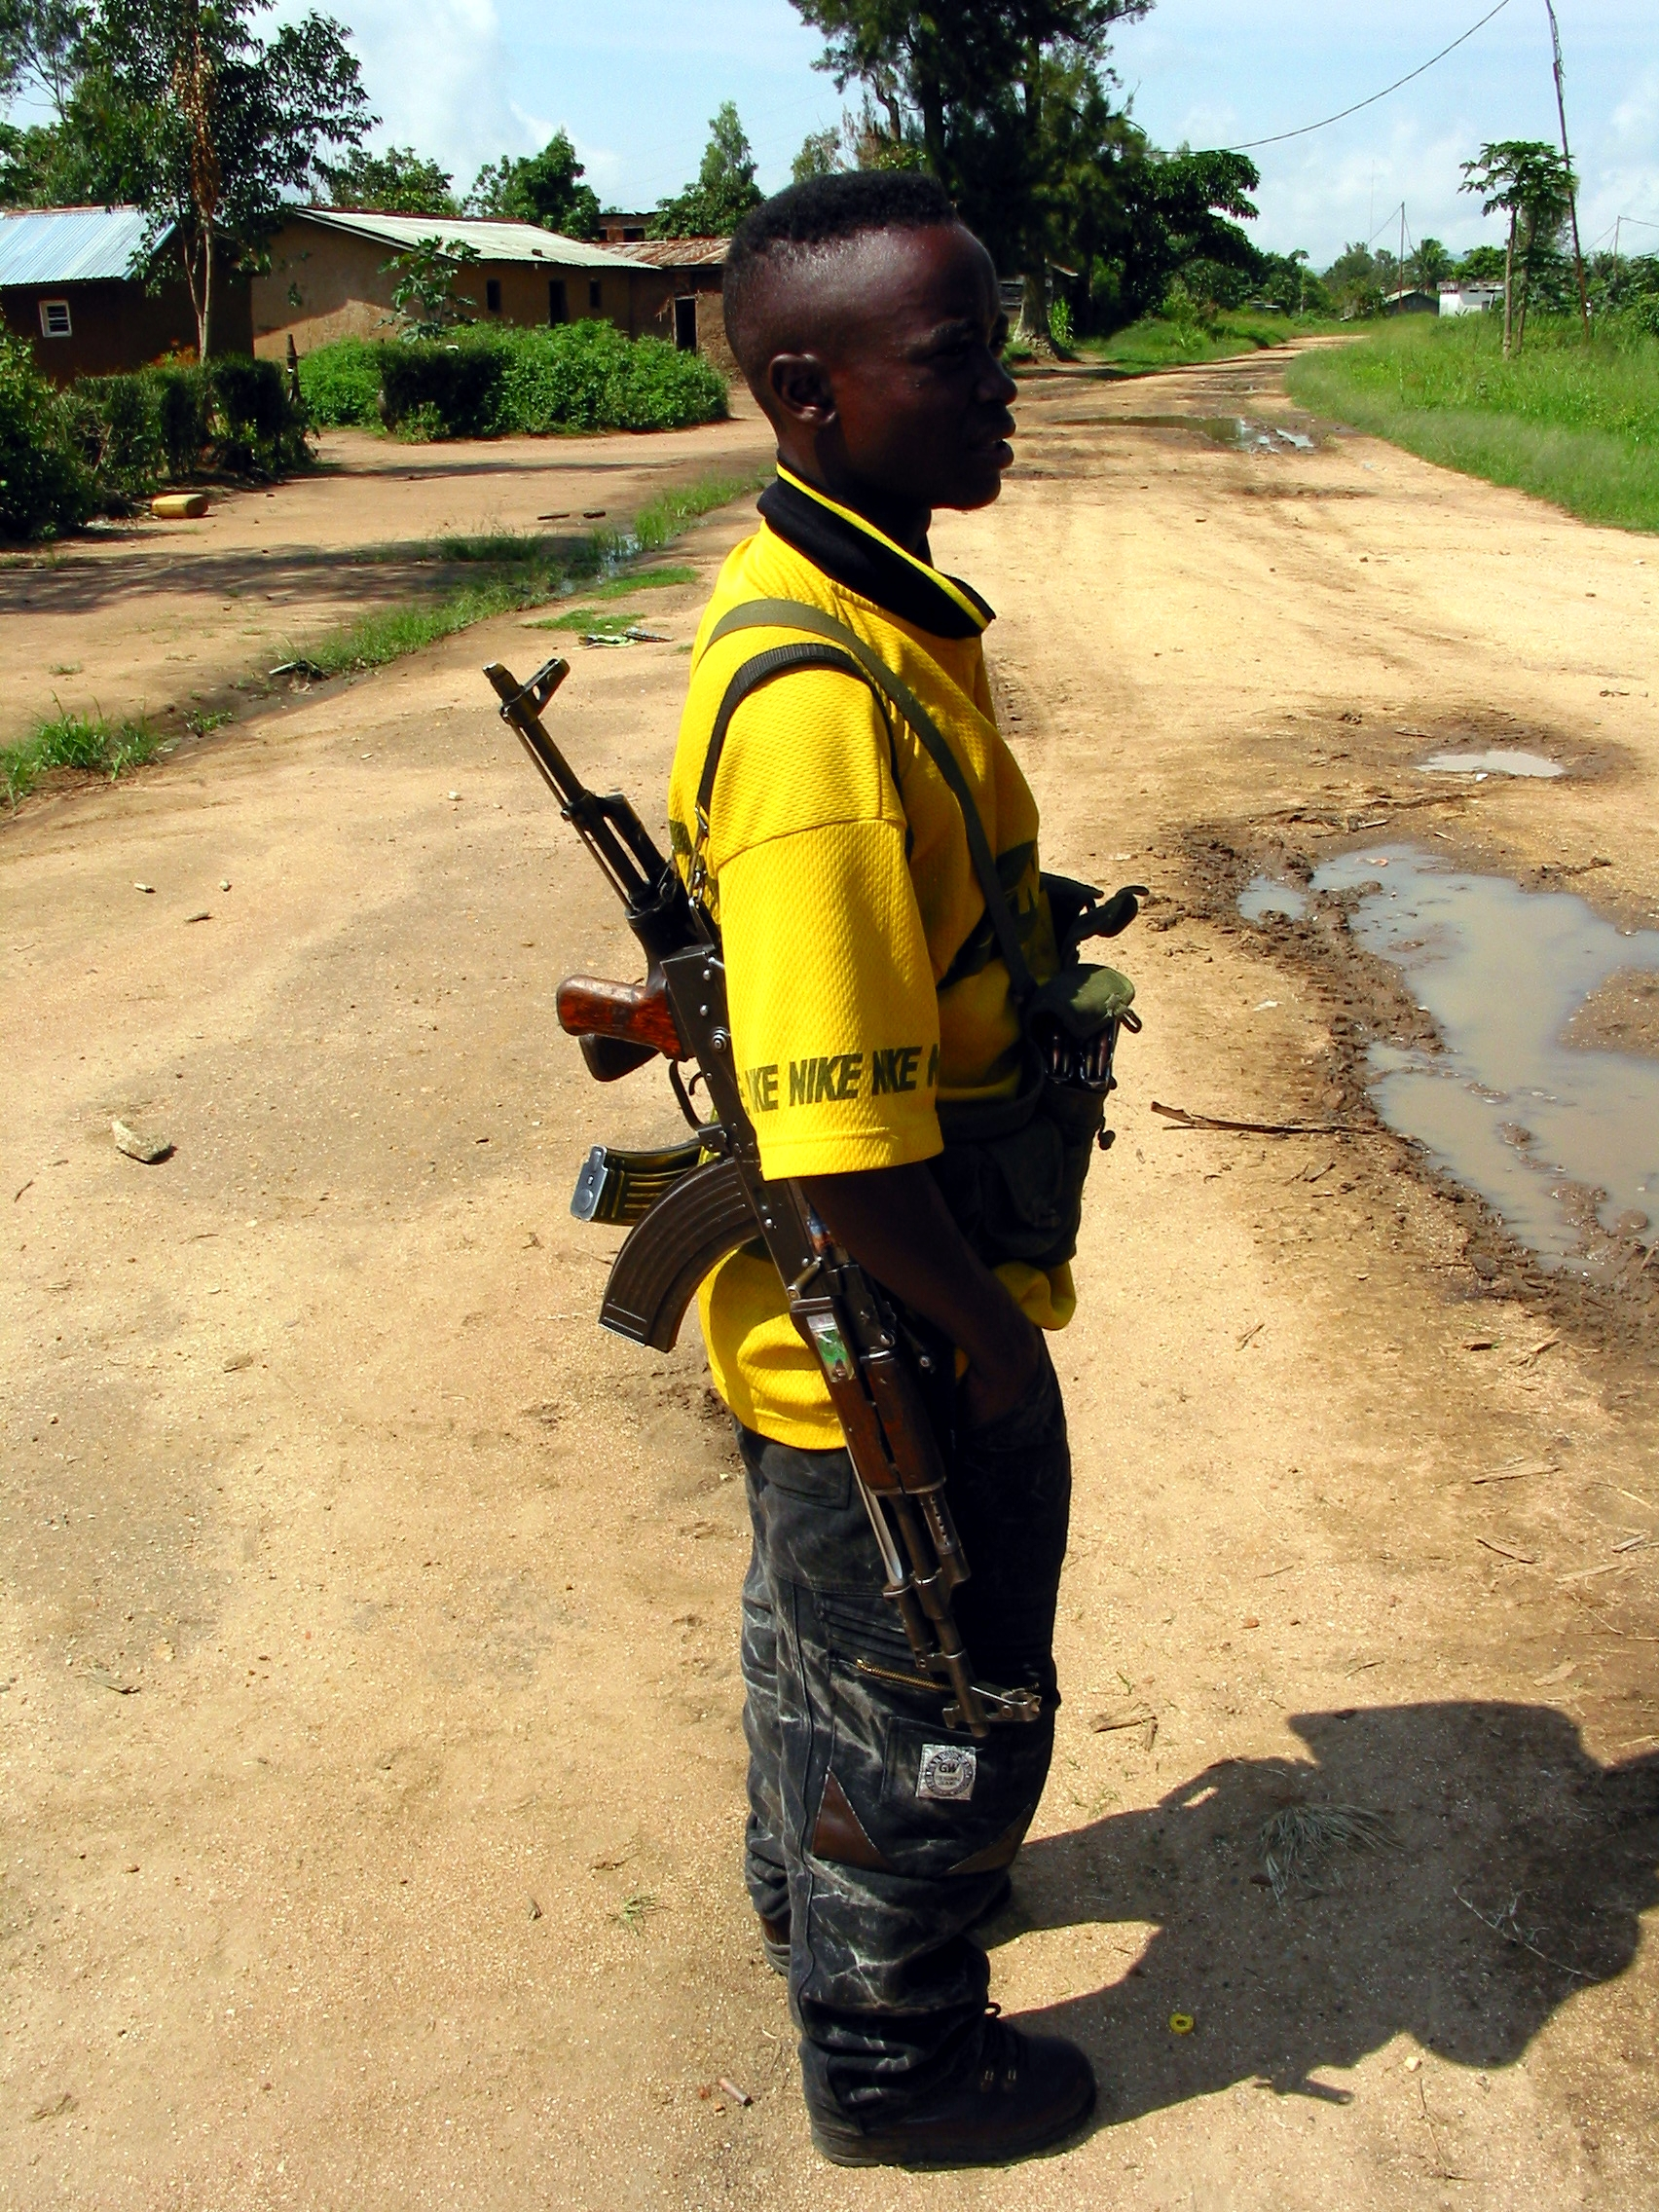 A young member of Thomas Lubanga's rebel group in Bunia in 2003.